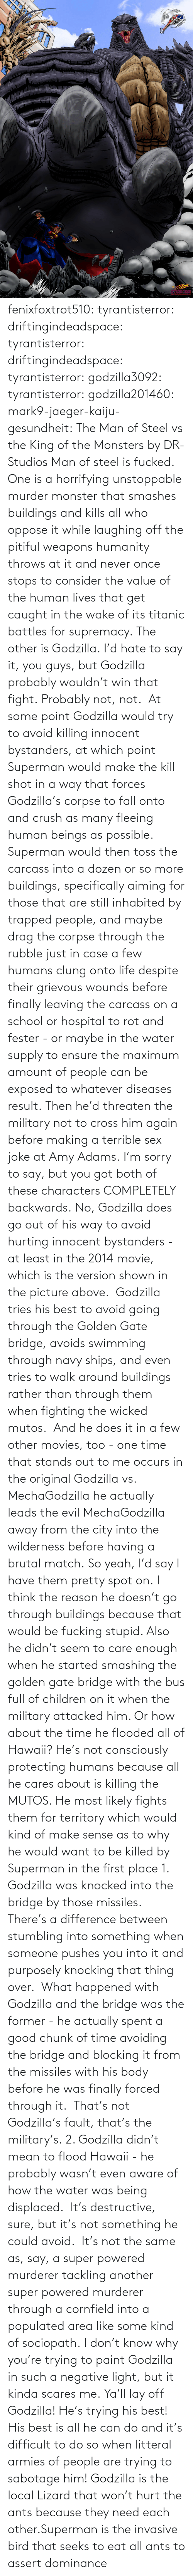 Pitiful: fenixfoxtrot510:  tyrantisterror: driftingindeadspace:  tyrantisterror:  driftingindeadspace:  tyrantisterror:  godzilla3092:  tyrantisterror:  godzilla201460:  mark9-jaeger-kaiju-gesundheit:  The Man of Steel vs the King of the Monsters by DR-Studios  Man of steel is fucked.  One is a horrifying unstoppable murder monster that smashes buildings and kills all who oppose it while laughing off the pitiful weapons humanity throws at it and never once stops to consider the value of the human lives that get caught in the wake of its titanic battles for supremacy. The other is Godzilla.  I'd hate to say it, you guys, but Godzilla probably wouldn't win that fight.  Probably not, not.  At some point Godzilla would try to avoid killing innocent bystanders, at which point Superman would make the kill shot in a way that forces Godzilla's corpse to fall onto and crush as many fleeing human beings as possible.  Superman would then toss the carcass into a dozen or so more buildings, specifically aiming for those that are still inhabited by trapped people, and maybe drag the corpse through the rubble just in case a few humans clung onto life despite their grievous wounds before finally leaving the carcass on a school or hospital to rot and fester - or maybe in the water supply to ensure the maximum amount of people can be exposed to whatever diseases result. Then he'd threaten the military not to cross him again before making a terrible sex joke at Amy Adams.  I'm sorry to say, but you got both of these characters COMPLETELY backwards.  No, Godzilla does go out of his way to avoid hurting innocent bystanders - at least in the 2014 movie, which is the version shown in the picture above.  Godzilla tries his best to avoid going through the Golden Gate bridge, avoids swimming through navy ships, and even tries to walk around buildings rather than through them when fighting the wicked mutos.  And he does it in a few other movies, too - one time that stands out to me occurs in the original Godzilla vs. MechaGodzilla he actually leads the evil MechaGodzilla away from the city into the wilderness before having a brutal match. So yeah, I'd say I have them pretty spot on.  I think the reason he doesn't go through buildings because that would be fucking stupid. Also he didn't seem to care enough when he started smashing the golden gate bridge with the bus full of children on it when the military attacked him. Or how about the time he flooded all of Hawaii? He's not consciously protecting humans because all he cares about is killing the MUTOS. He most likely fights them for territory which would kind of make sense as to why he would want to be killed by Superman in the first place  1. Godzilla was knocked into the bridge by those missiles.  There's a difference between stumbling into something when someone pushes you into it and purposely knocking that thing over.  What happened with Godzilla and the bridge was the former - he actually spent a good chunk of time avoiding the bridge and blocking it from the missiles with his body before he was finally forced through it.  That's not Godzilla's fault, that's the military's. 2. Godzilla didn't mean to flood Hawaii - he probably wasn't even aware of how the water was being displaced.  It's destructive, sure, but it's not something he could avoid.  It's not the same as, say, a super powered murderer tackling another super powered murderer through a cornfield into a populated area like some kind of sociopath. I don't know why you're trying to paint Godzilla in such a negative light, but it kinda scares me.    Ya'll lay off Godzilla! He's trying his best! His best is all he can do and it's difficult to do so when litteral armies of people are trying to sabotage him!   Godzilla is the local Lizard that won't hurt the ants because they need each other.Superman is the invasive bird that seeks to eat all ants to assert dominance